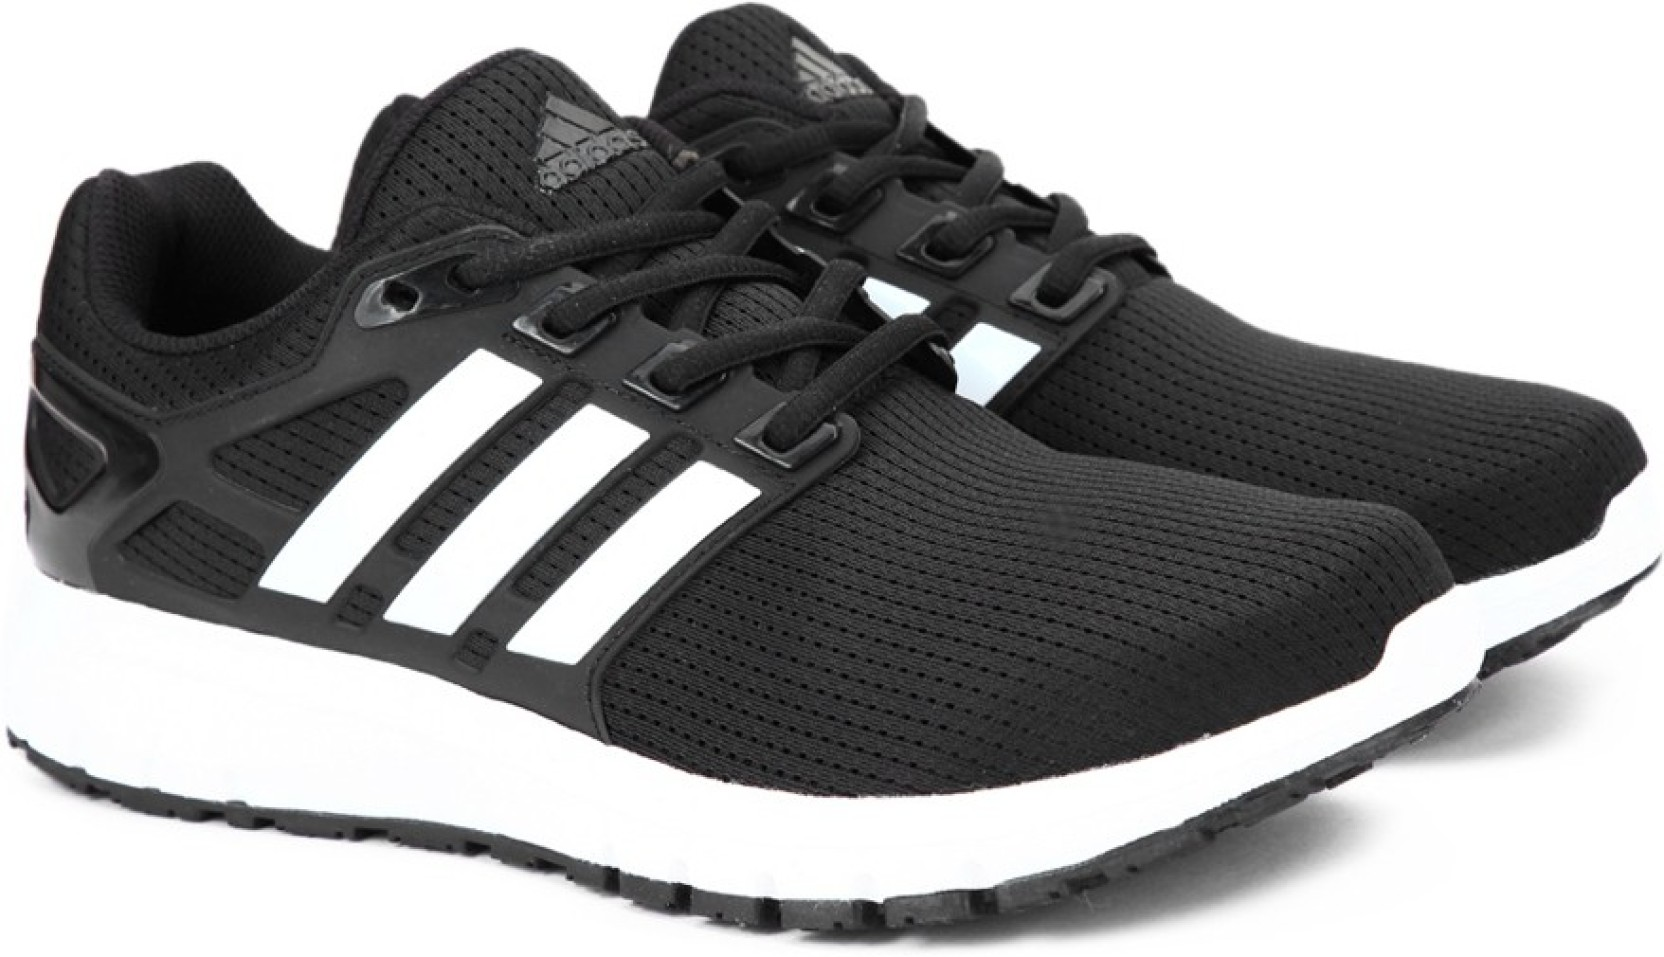 e6f62a8709da ADIDAS ENERGY CLOUD WTC M Running Shoes For Men - Buy CBLACK FTWWHT ...